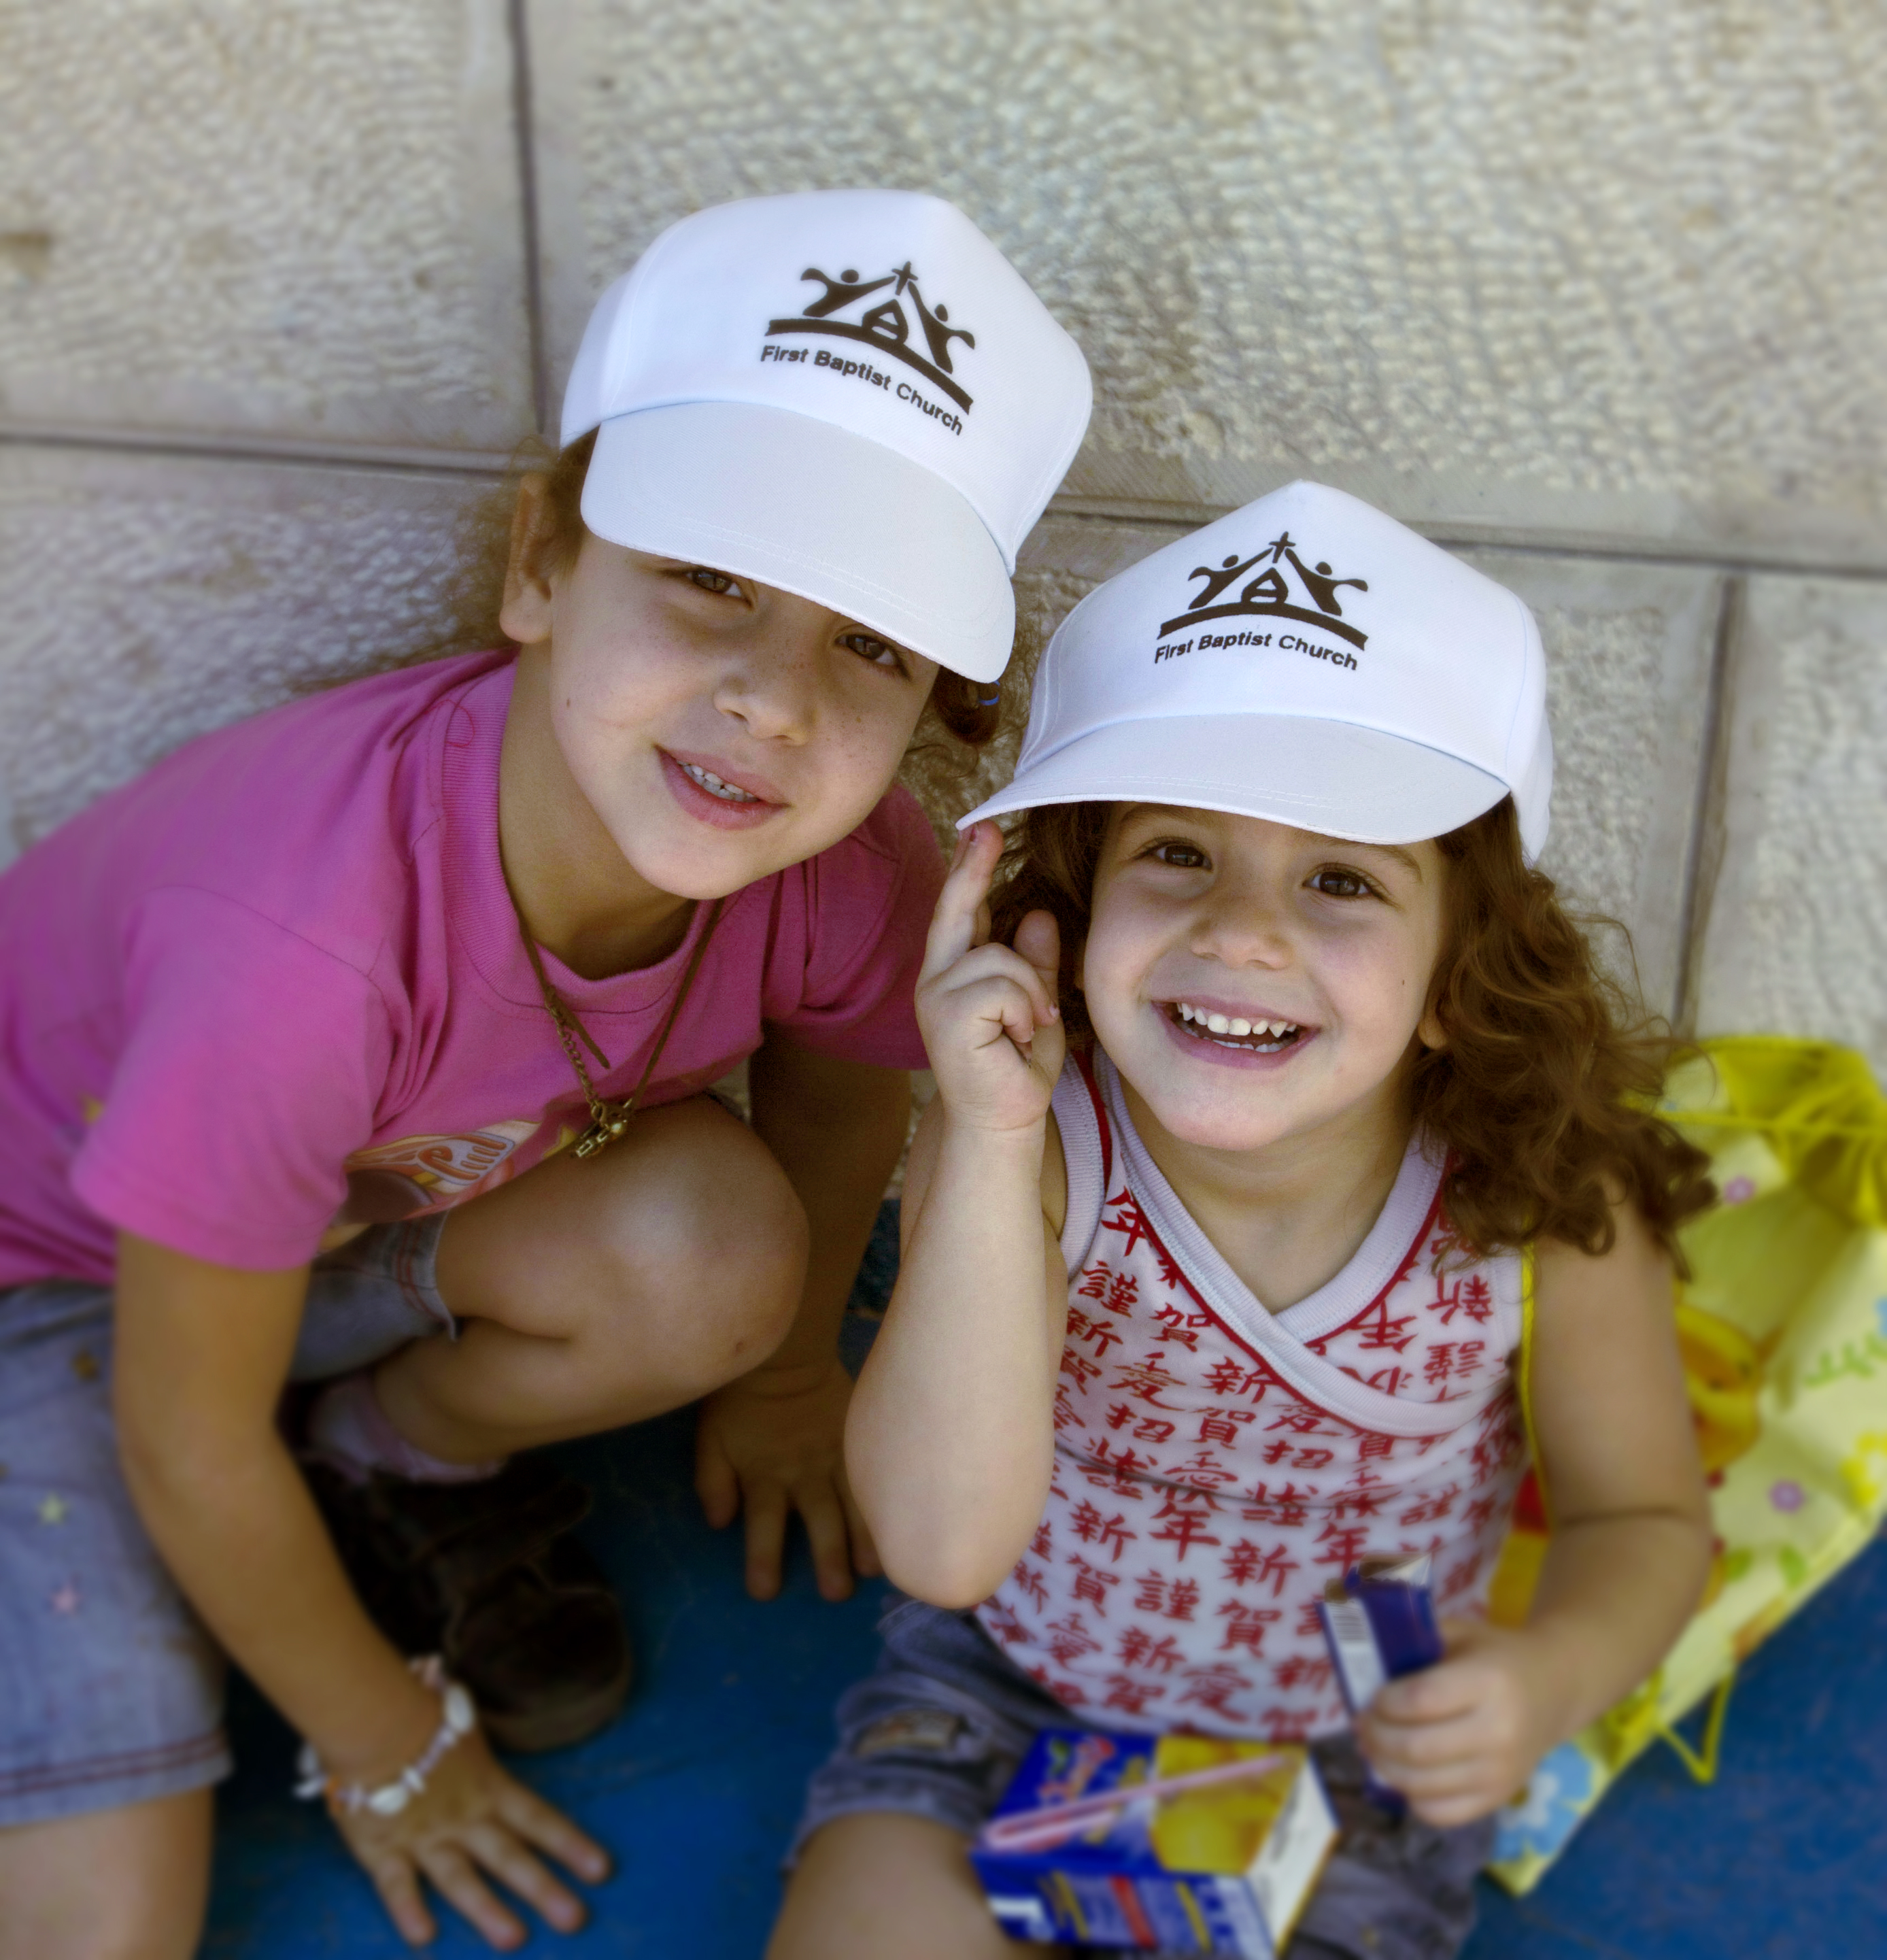 Two young girls at HLM Summer Camp, smiling while wearing white hats with the HLM logo.